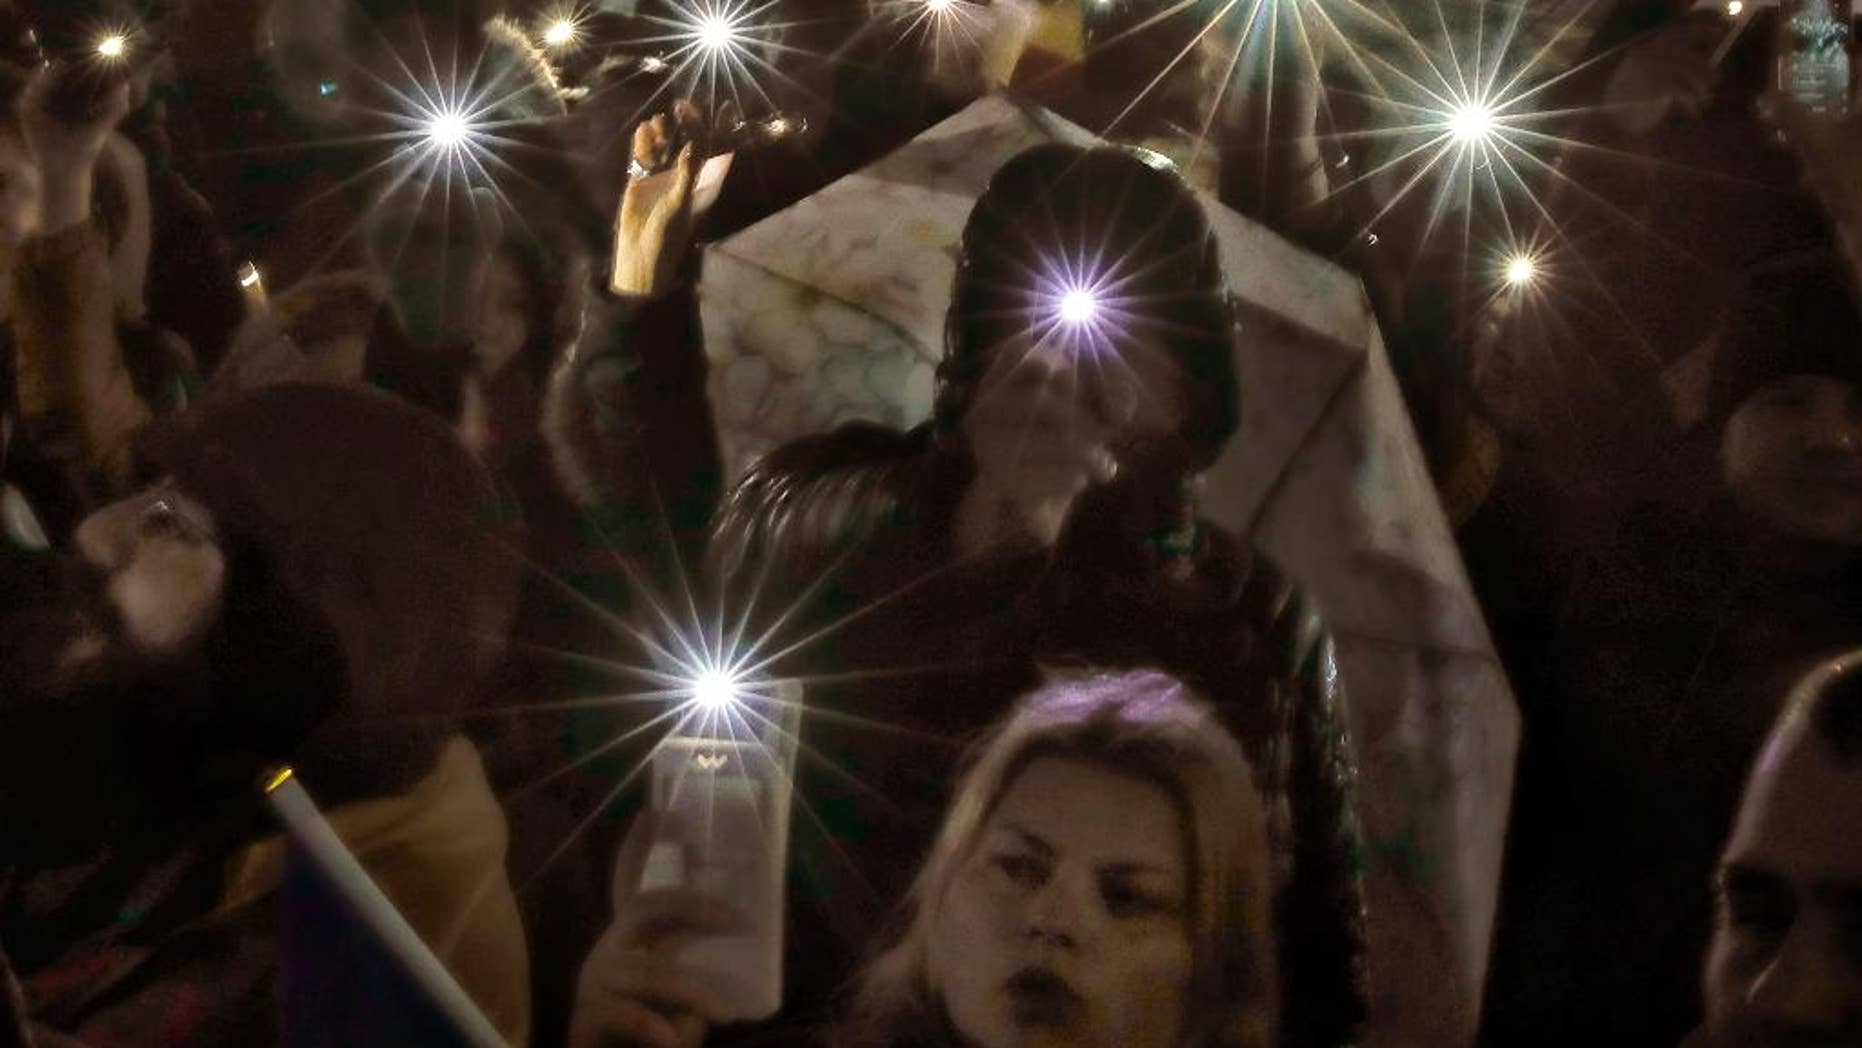 Protesters shine lights of their mobile phones while singing the national anthem outside the government headquarters in the rain in Bucharest, Romania, Sunday, Feb. 19, 2017. Braving the bad weather thousands gathered for the twentieth consecutive day to demand the government's resignation after it passed a decree, since withdrawn, that would have softened the corruption fight that has targeted top officials. (AP Photo/Vadim Ghirda)